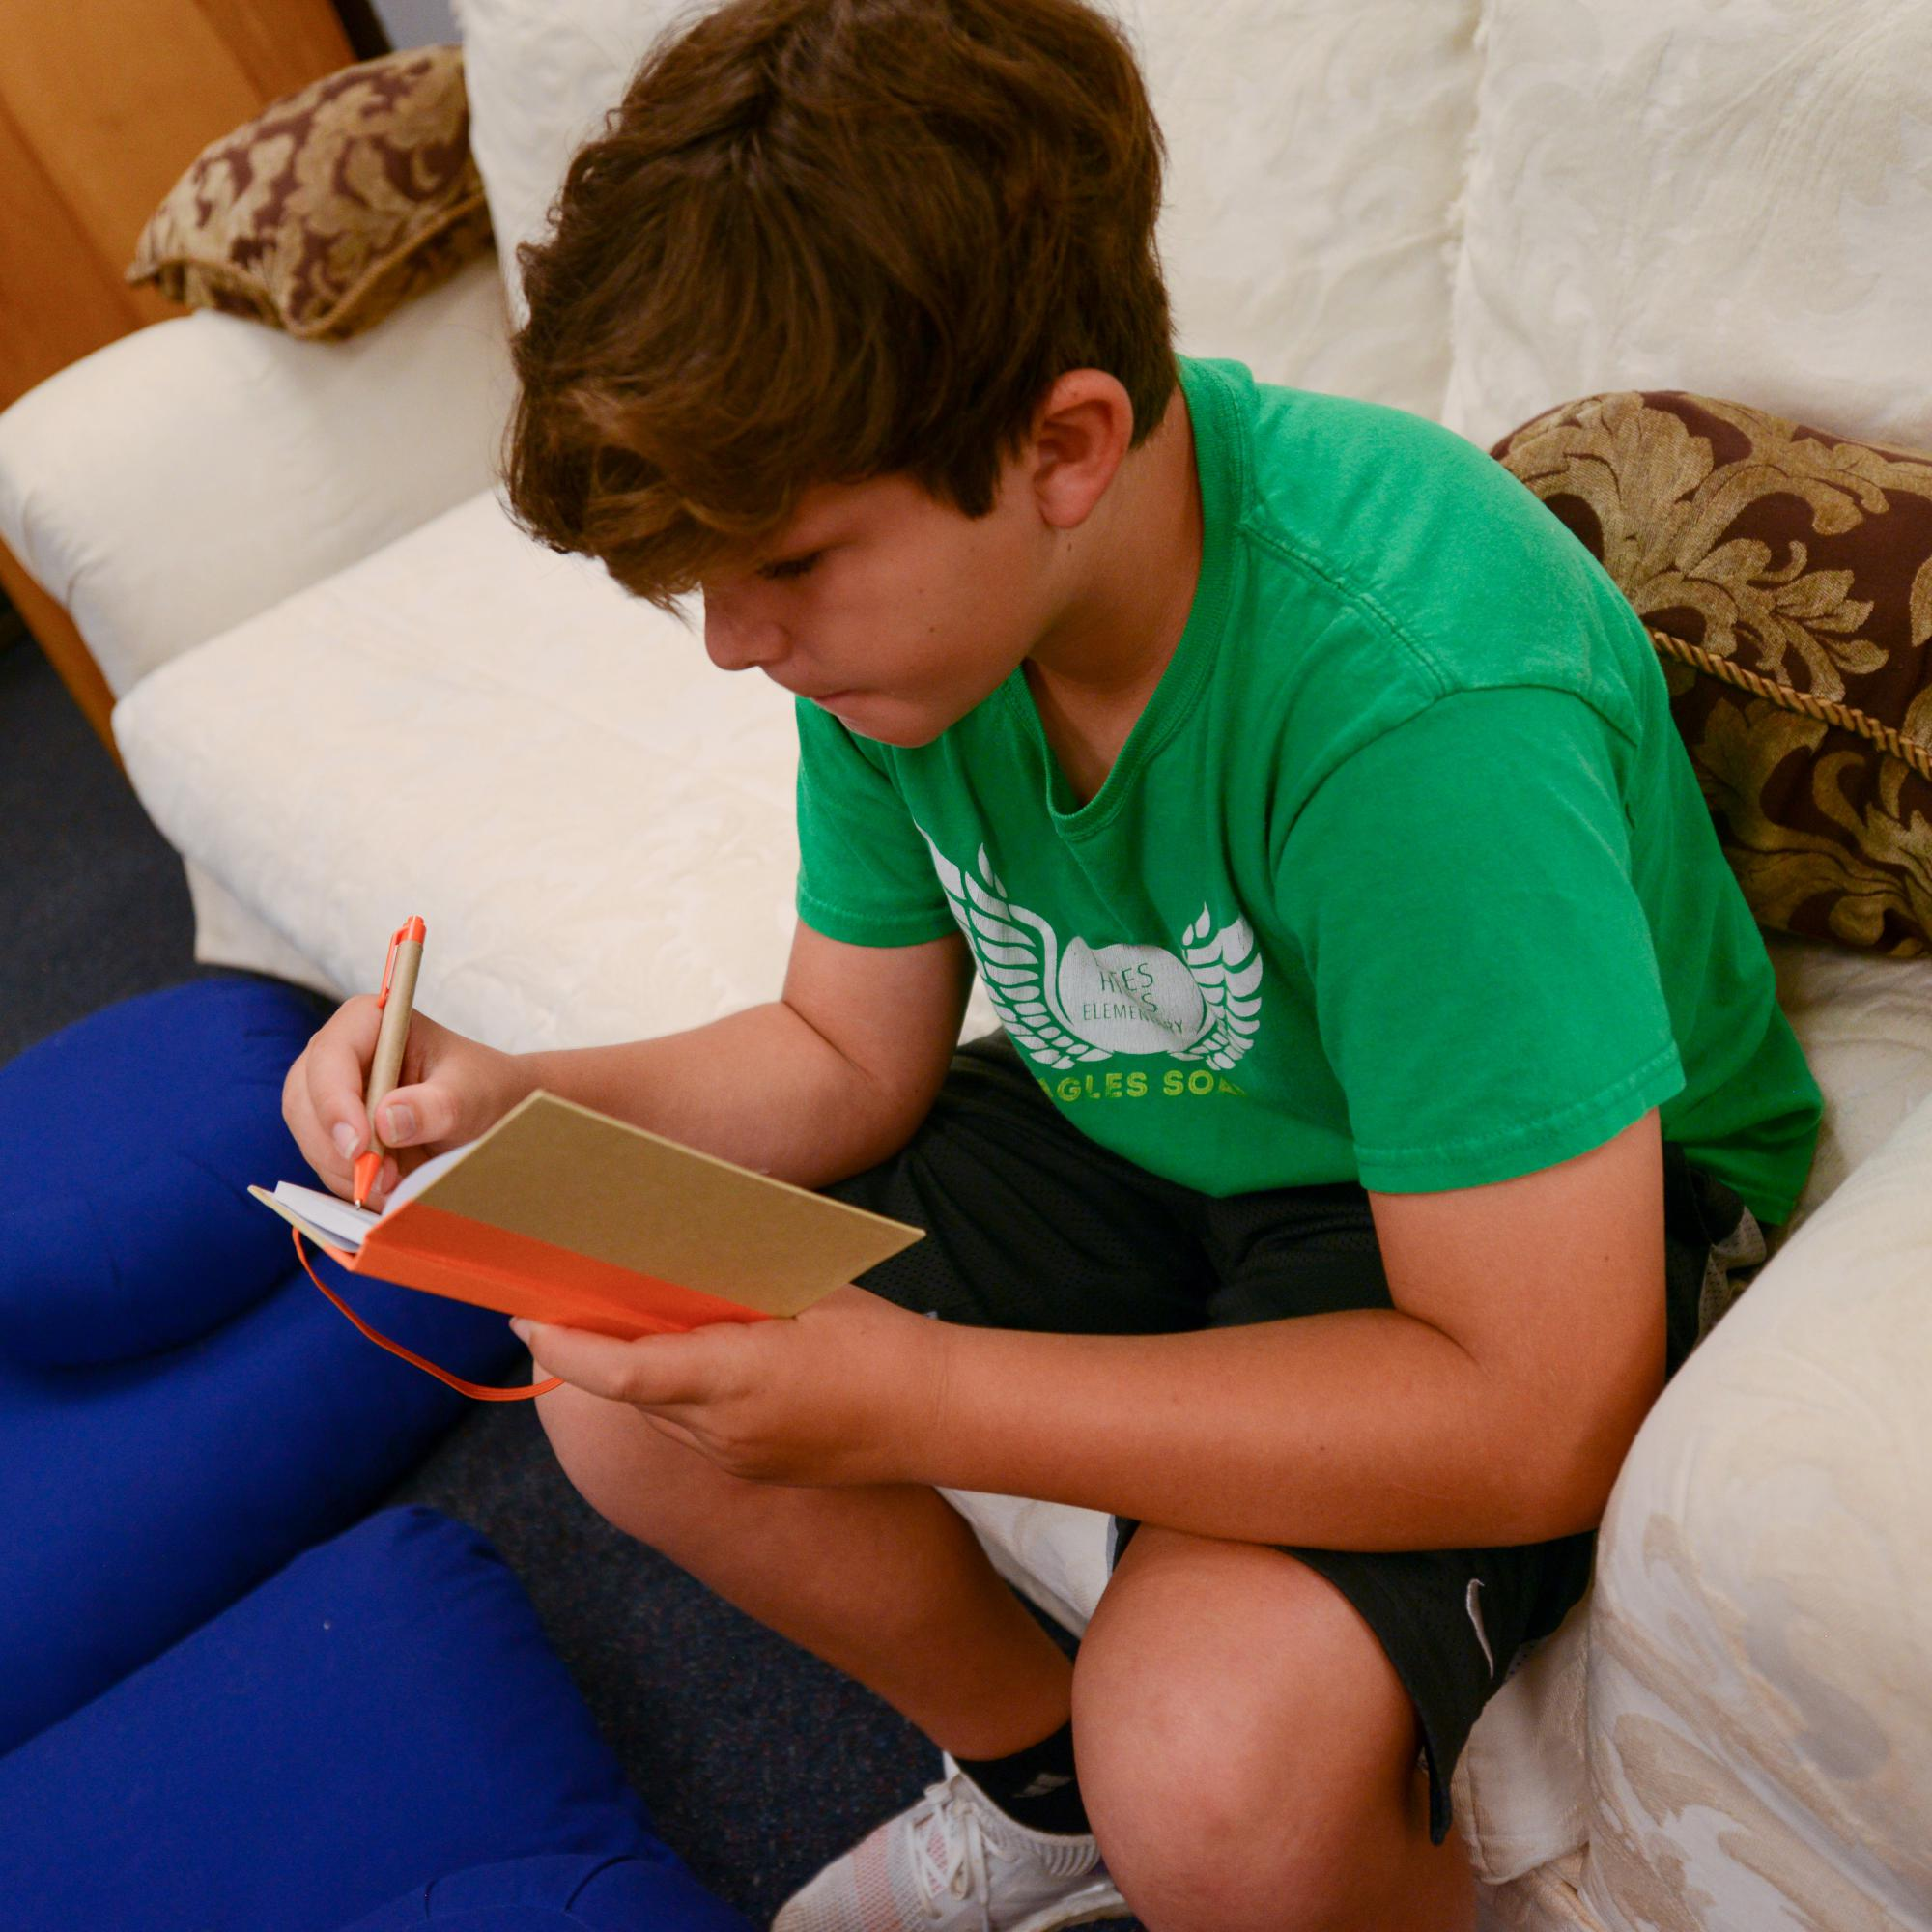 New Book Provides Guidance on Self-Compassion for Teens